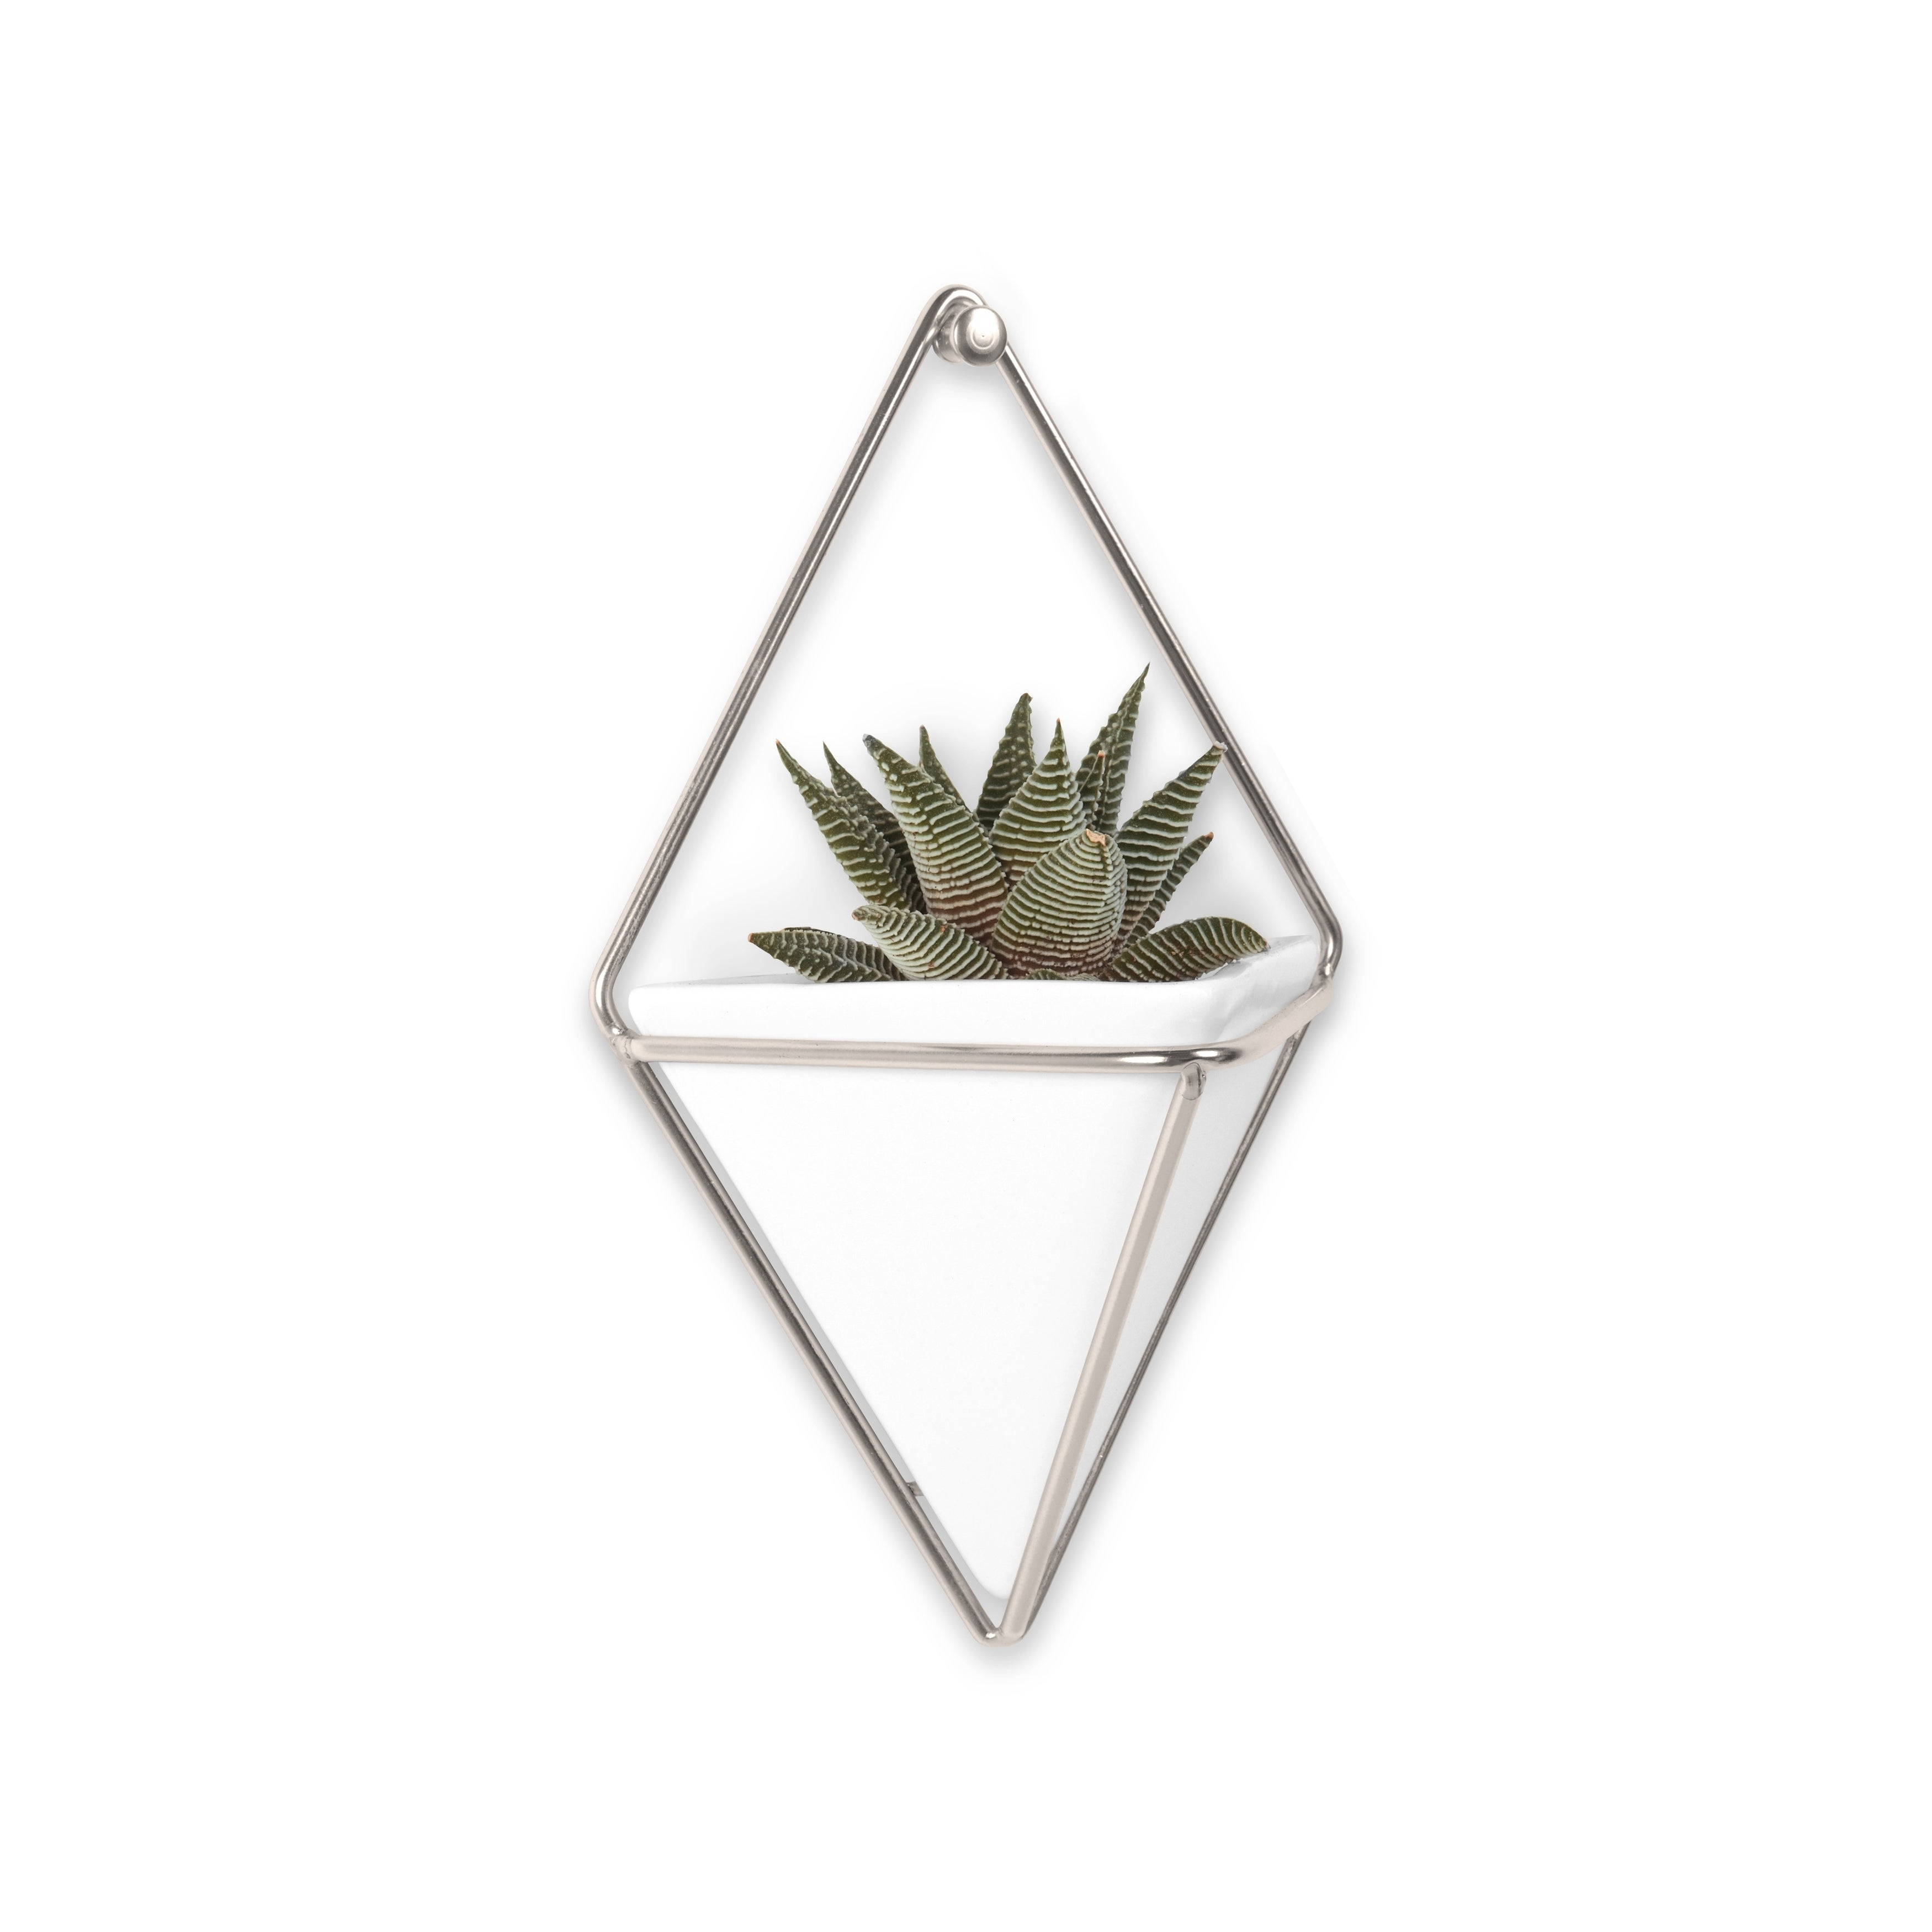 Shop Umbra Trigg Hanging Planter & Wall Decor (Set Of 2) – Free Throughout Latest 2 Piece Trigg Wall Decor Sets (Set Of 2) (View 12 of 20)